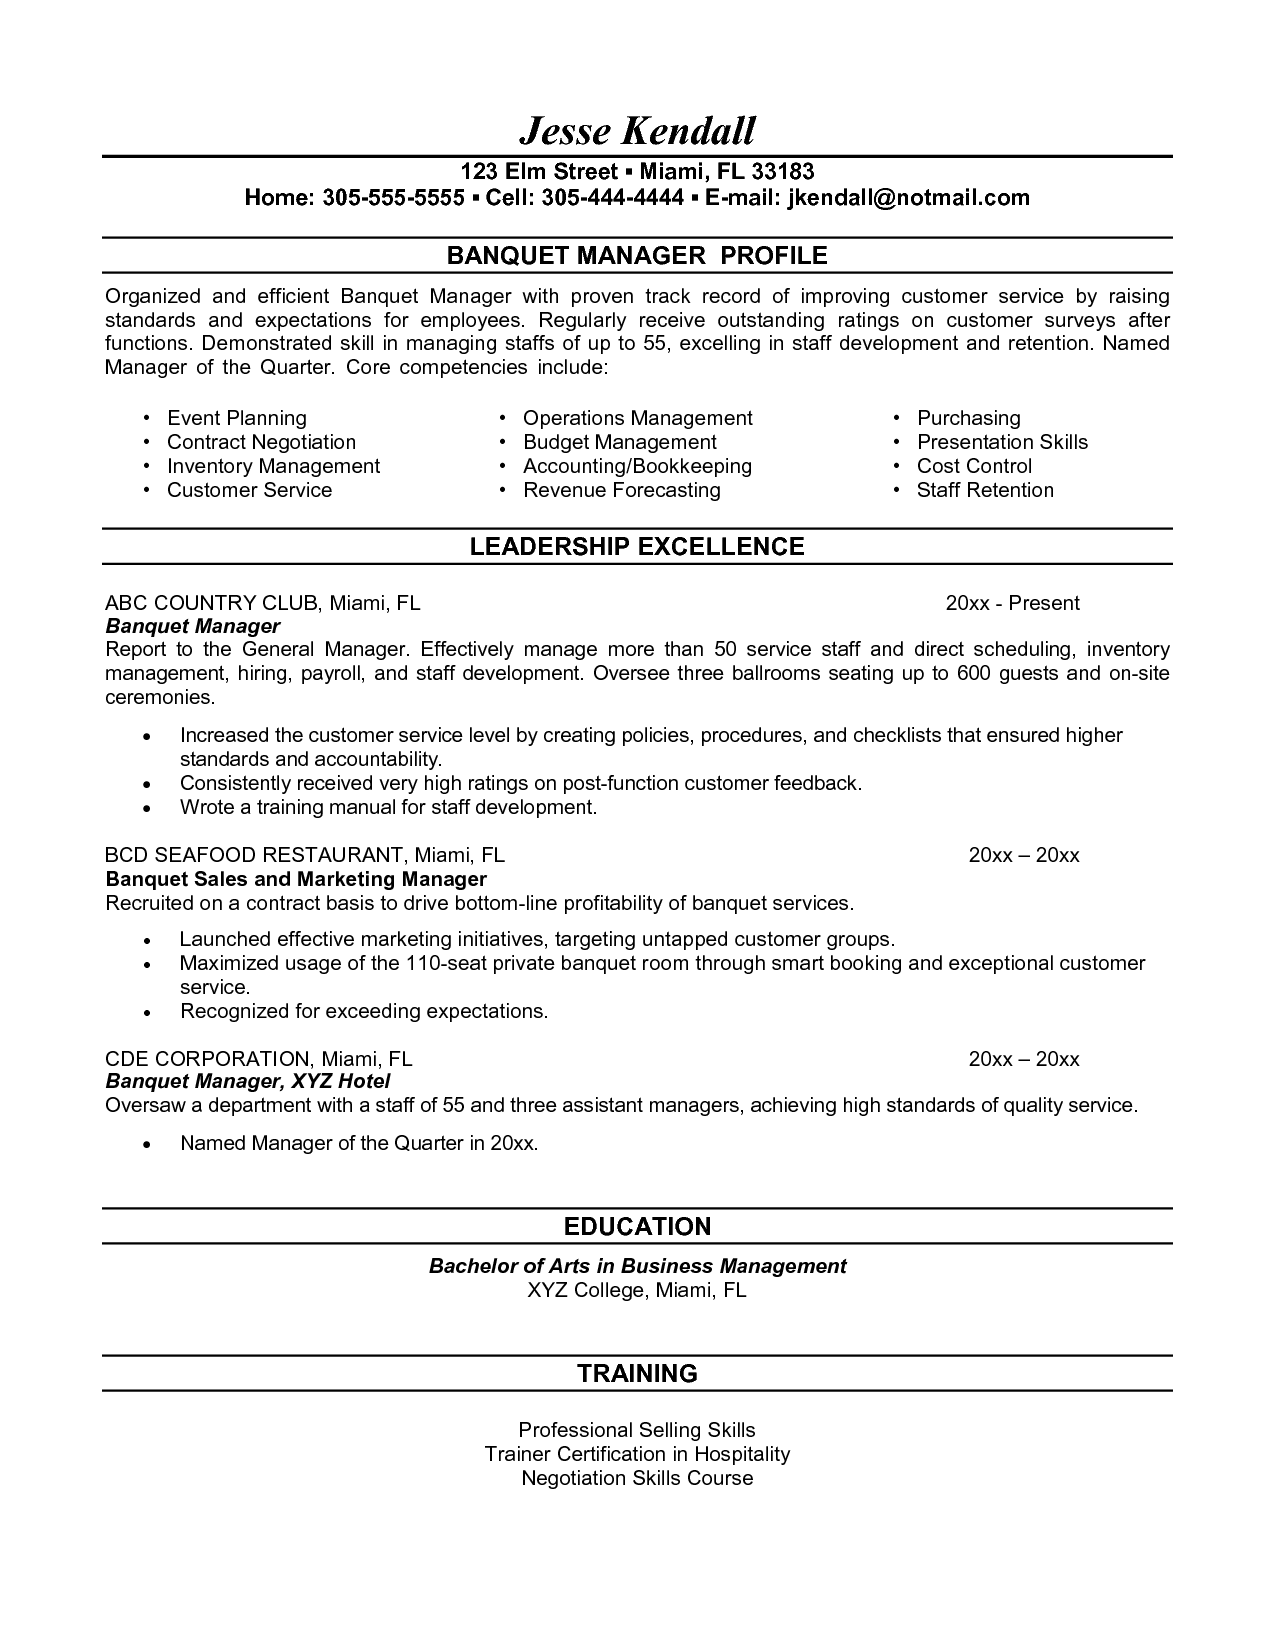 Resume Template Education Special Education Teacher Resume  School  Pinterest  Special